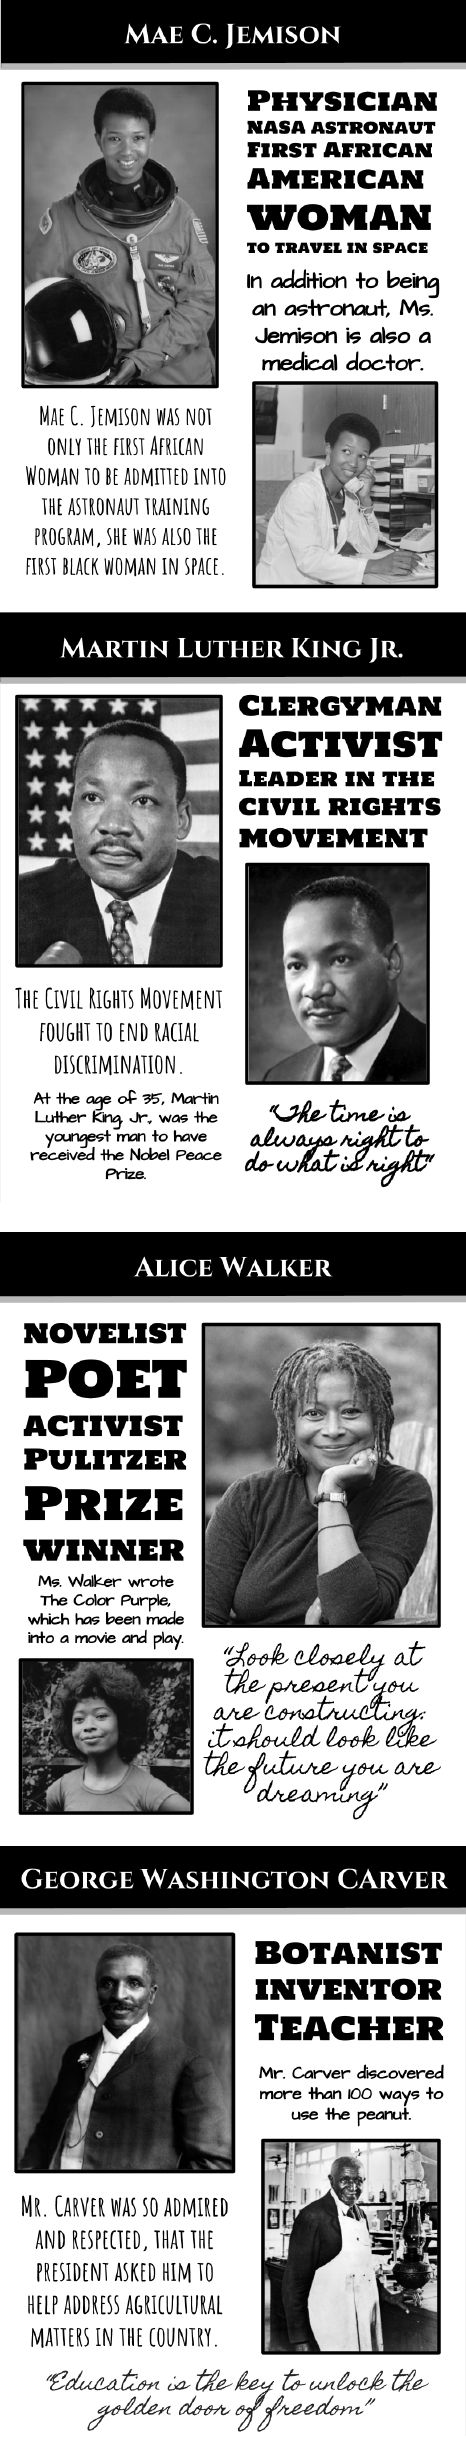 Don't relegate Black history to one month, these posters and the included questionnaire are a great way to get your students involved in learning about important figures in our history anytime. 23 historical individuals and their accomplishments are highlighted. Activists/ topics covered include: Georgia Douglas Johnson, The Harlem Renaissance, Martin Luther King Jr., The Civil Rights Movement, Rosa Parks, Maya Angelou, Harriet Tubman, Combahee River Raid and much more!